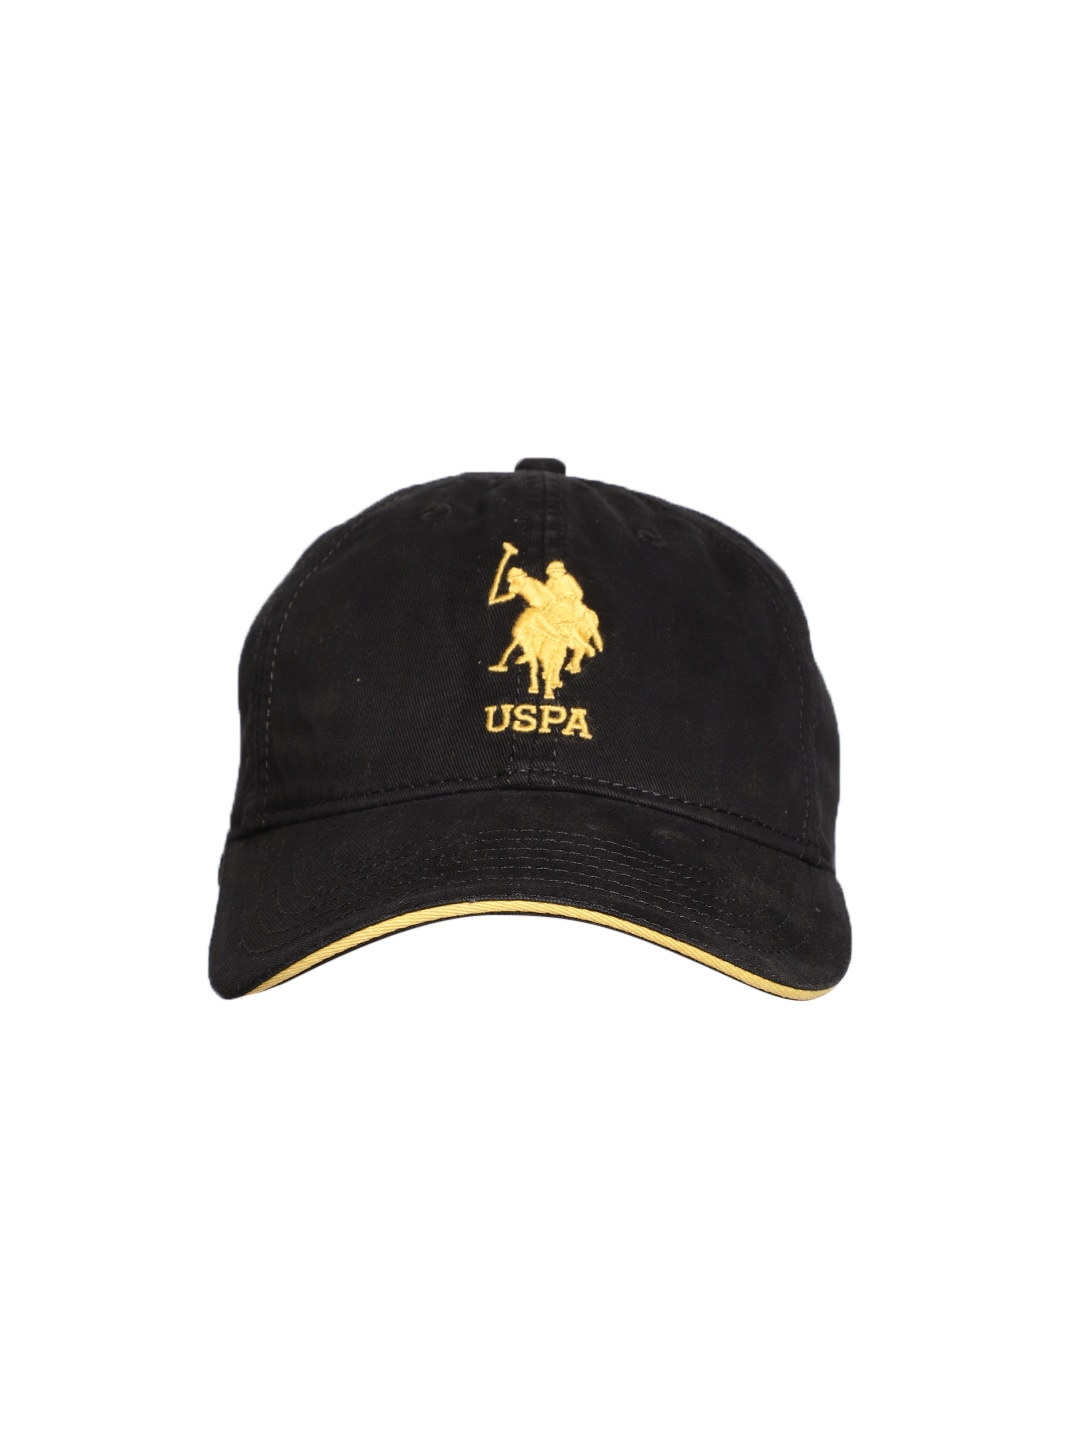 Baseball Cap - Shop for Baseball Caps Online in India  98d14a89abf